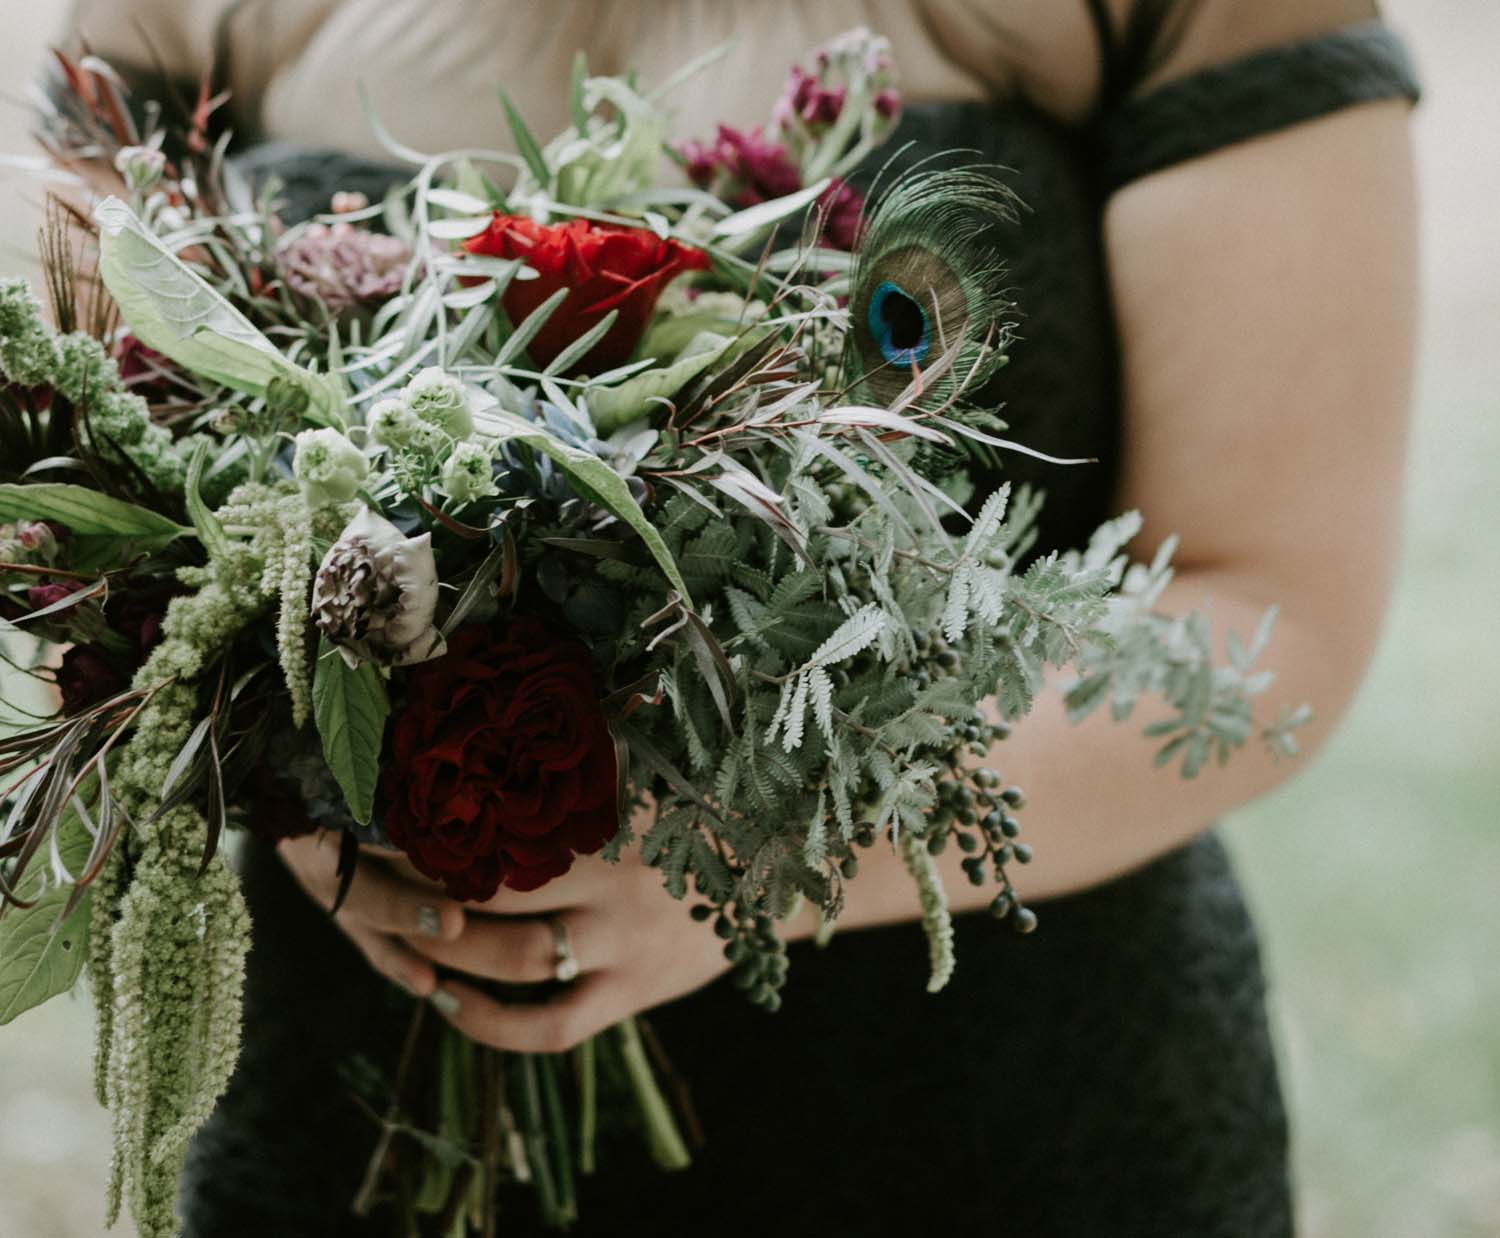 darkly-romantic-wedding-flowers-candis-floral-creations_18